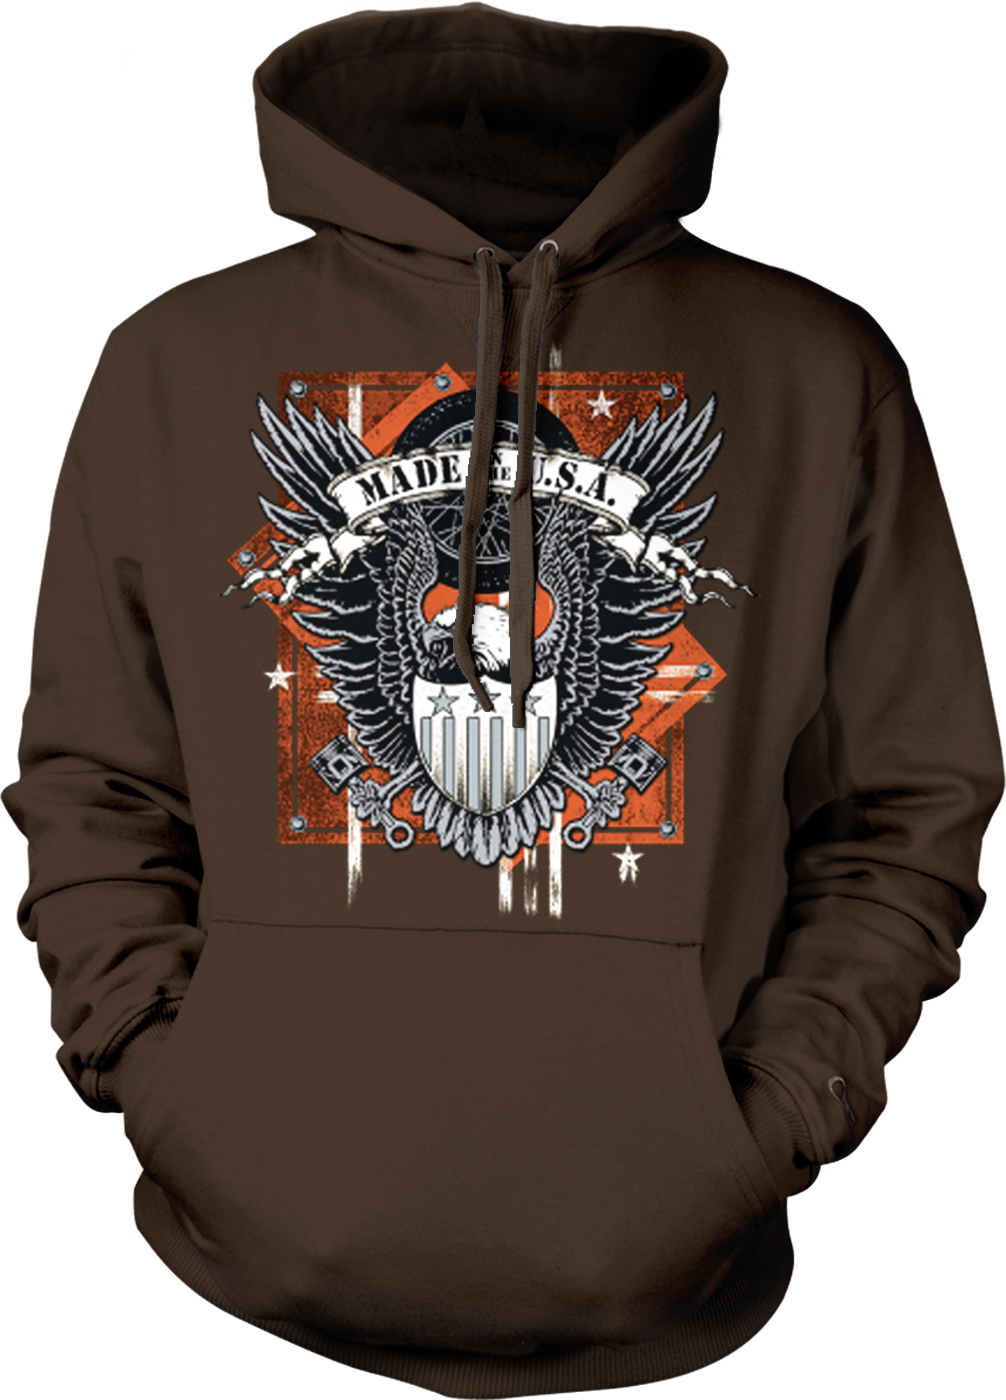 Hoodie made in usa